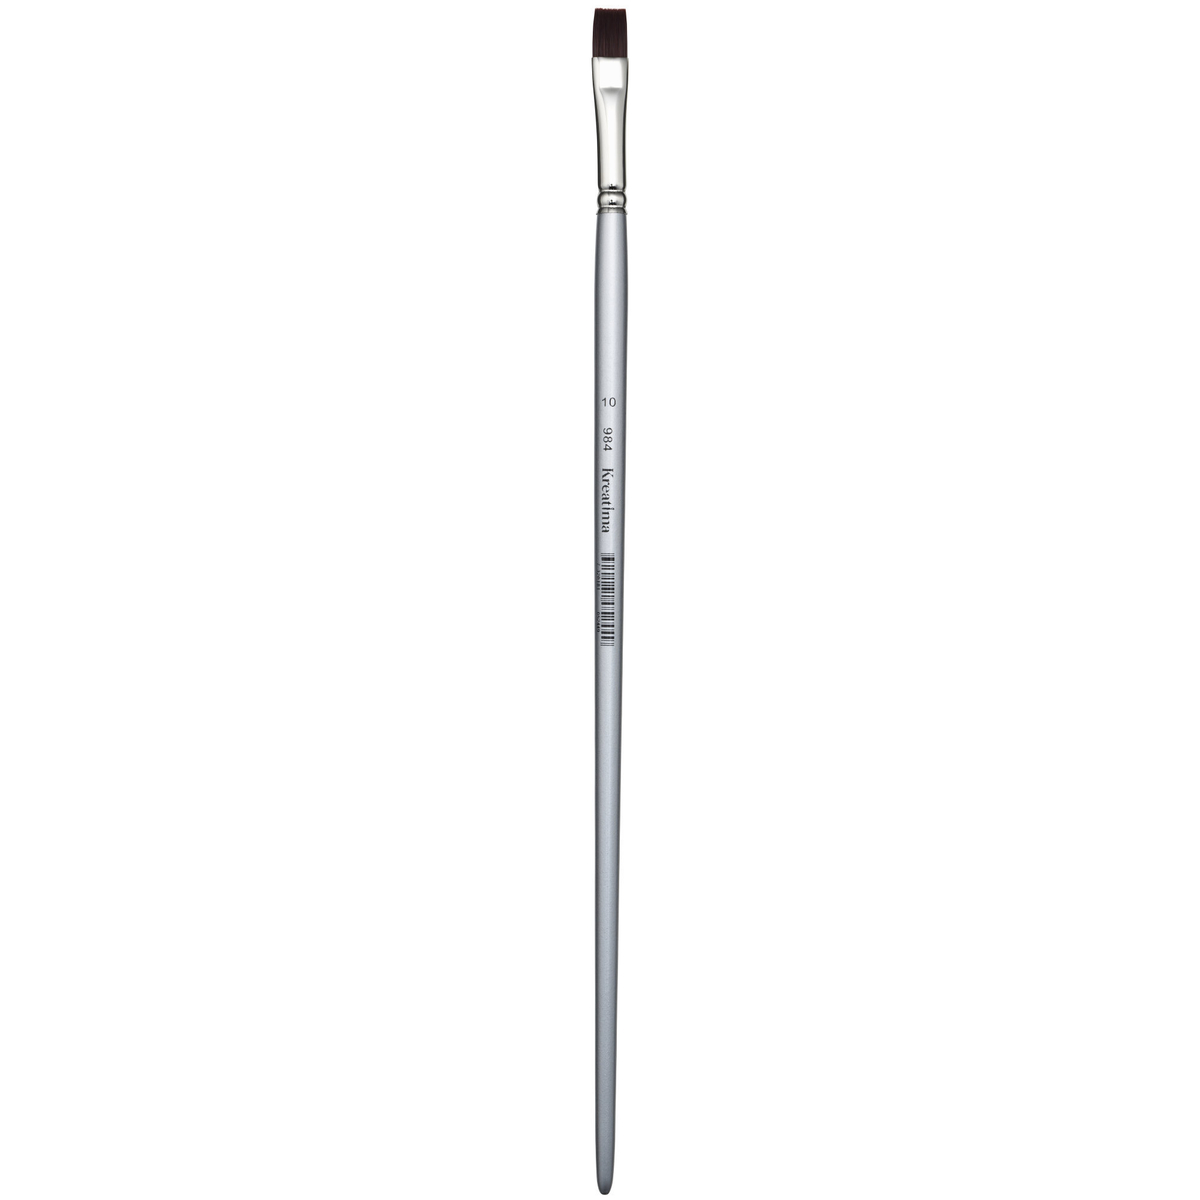 Acrylic Brush Flat 10